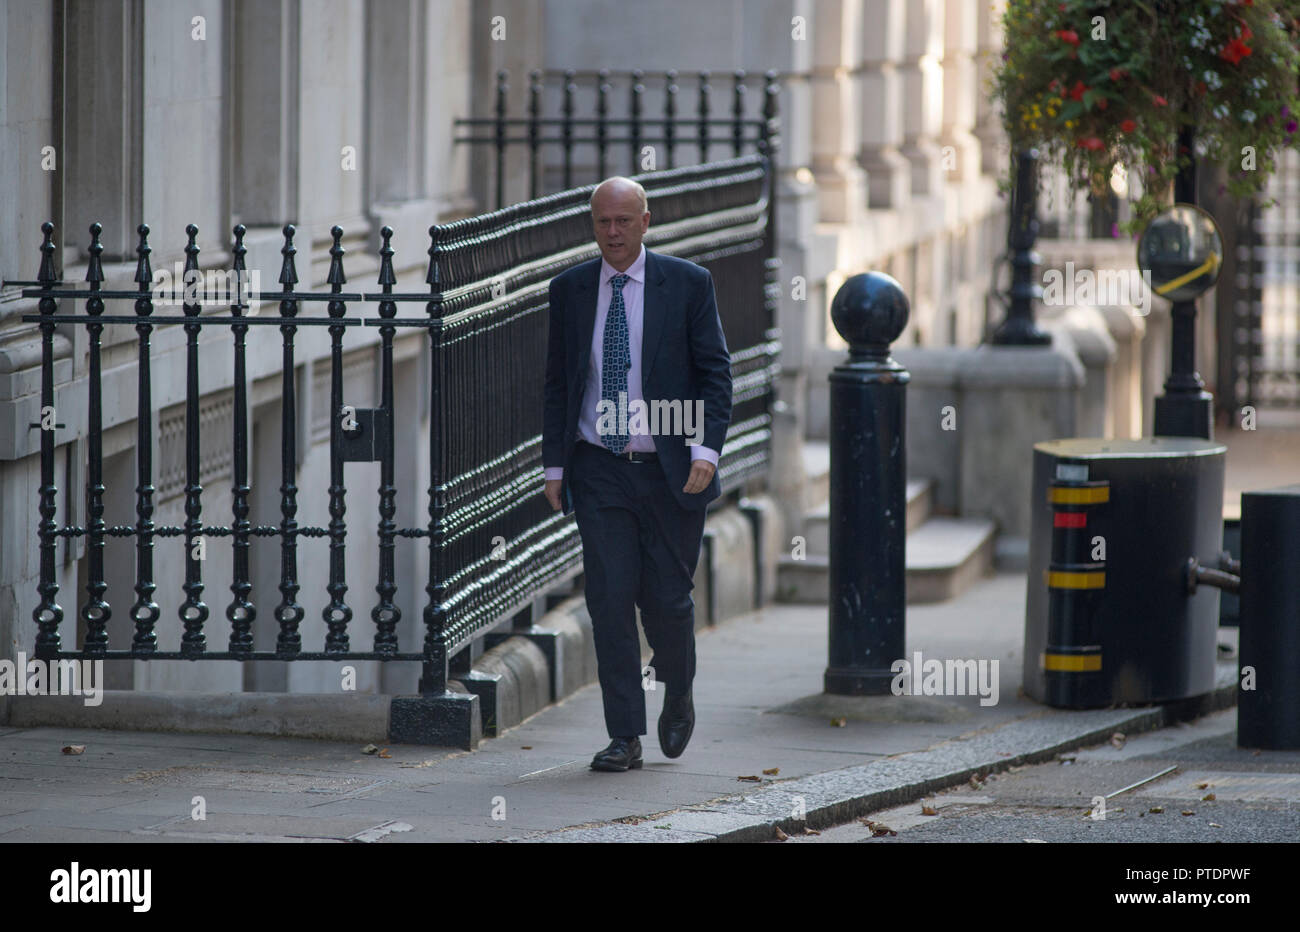 Downing Street, London, UK. 9 October 2018. Chris Grayling, Secretary of State for Transport in Downing Street for weekly cabinet meeting. Credit: Malcolm Park/Alamy Live News. - Stock Image